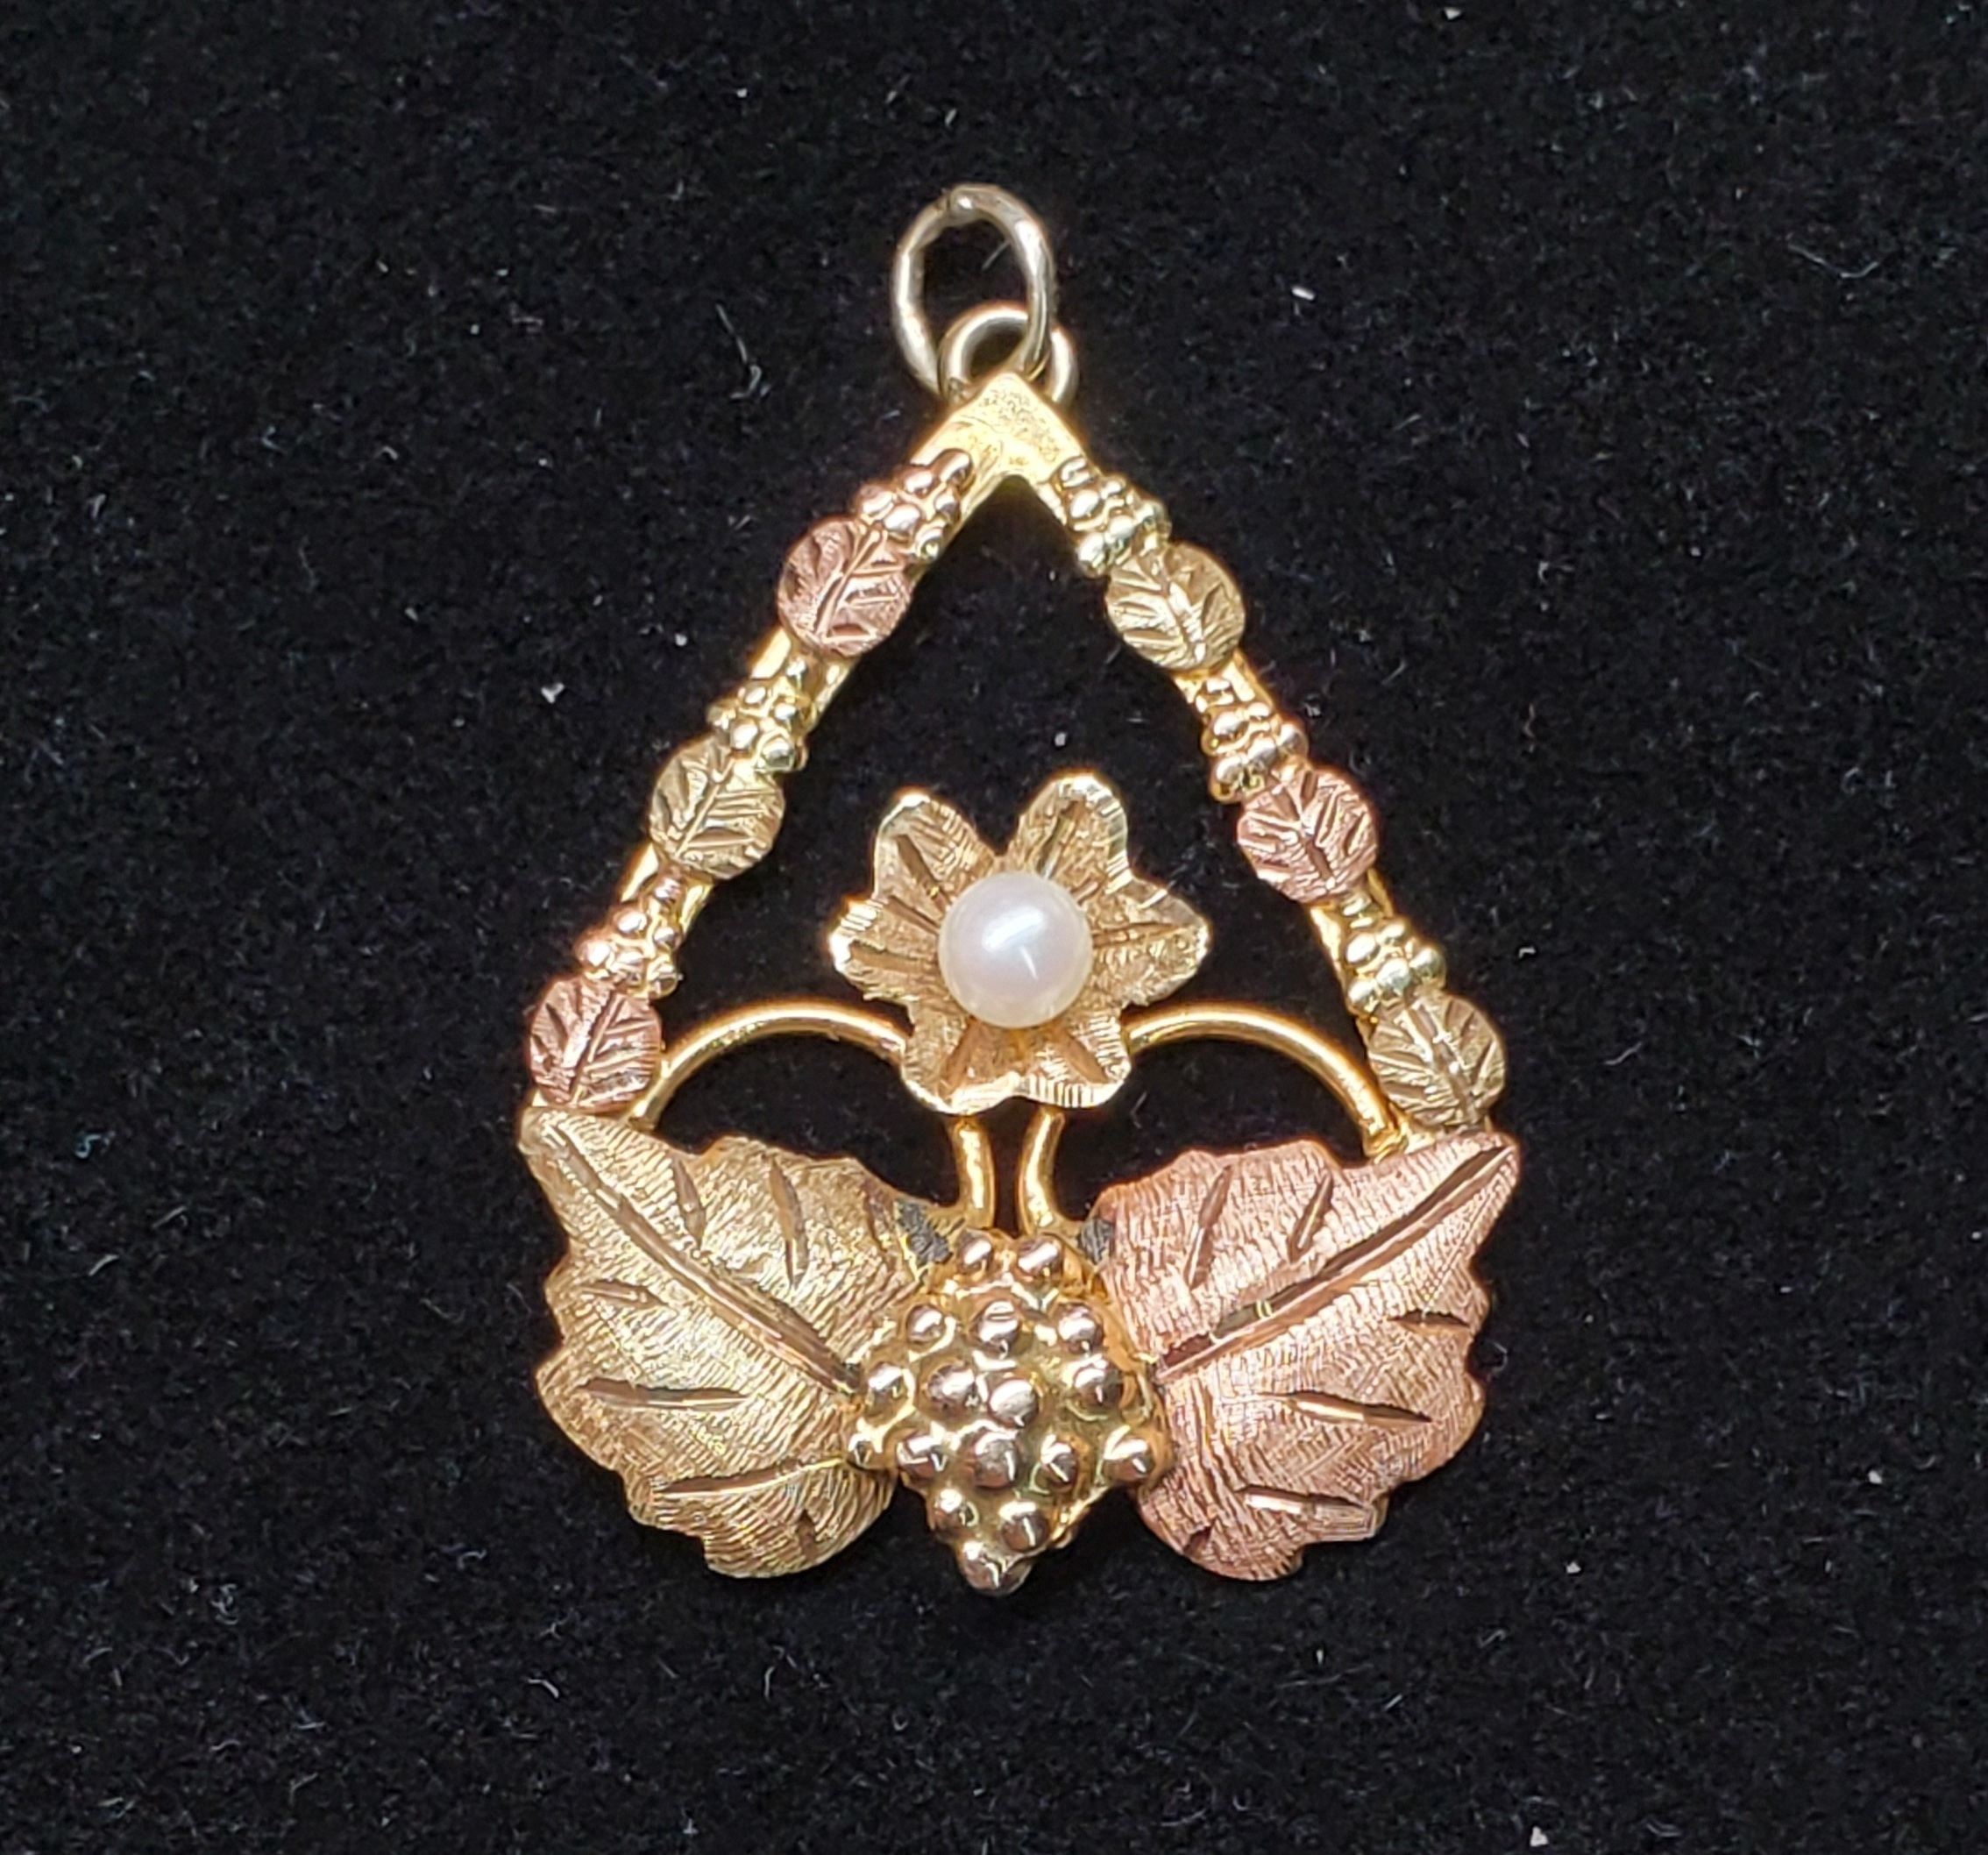 BHG PENDANT W/ 6 SMALL LEAVES, 2 BIG LEAVES & WHITE STONE IN CENTER